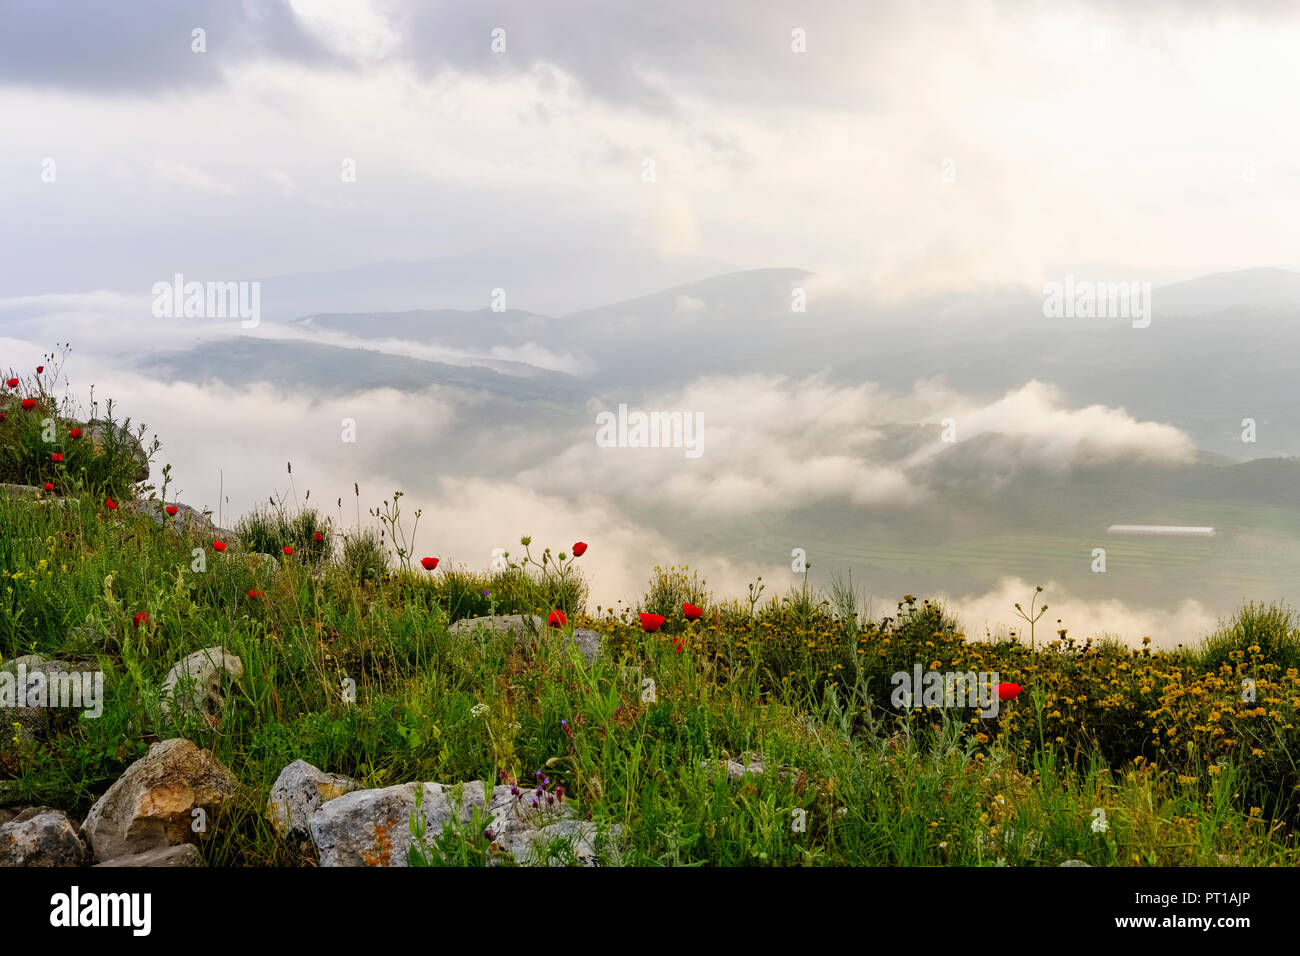 Albania, Fier County, View from Byllis, landscape and morning fog - Stock Image